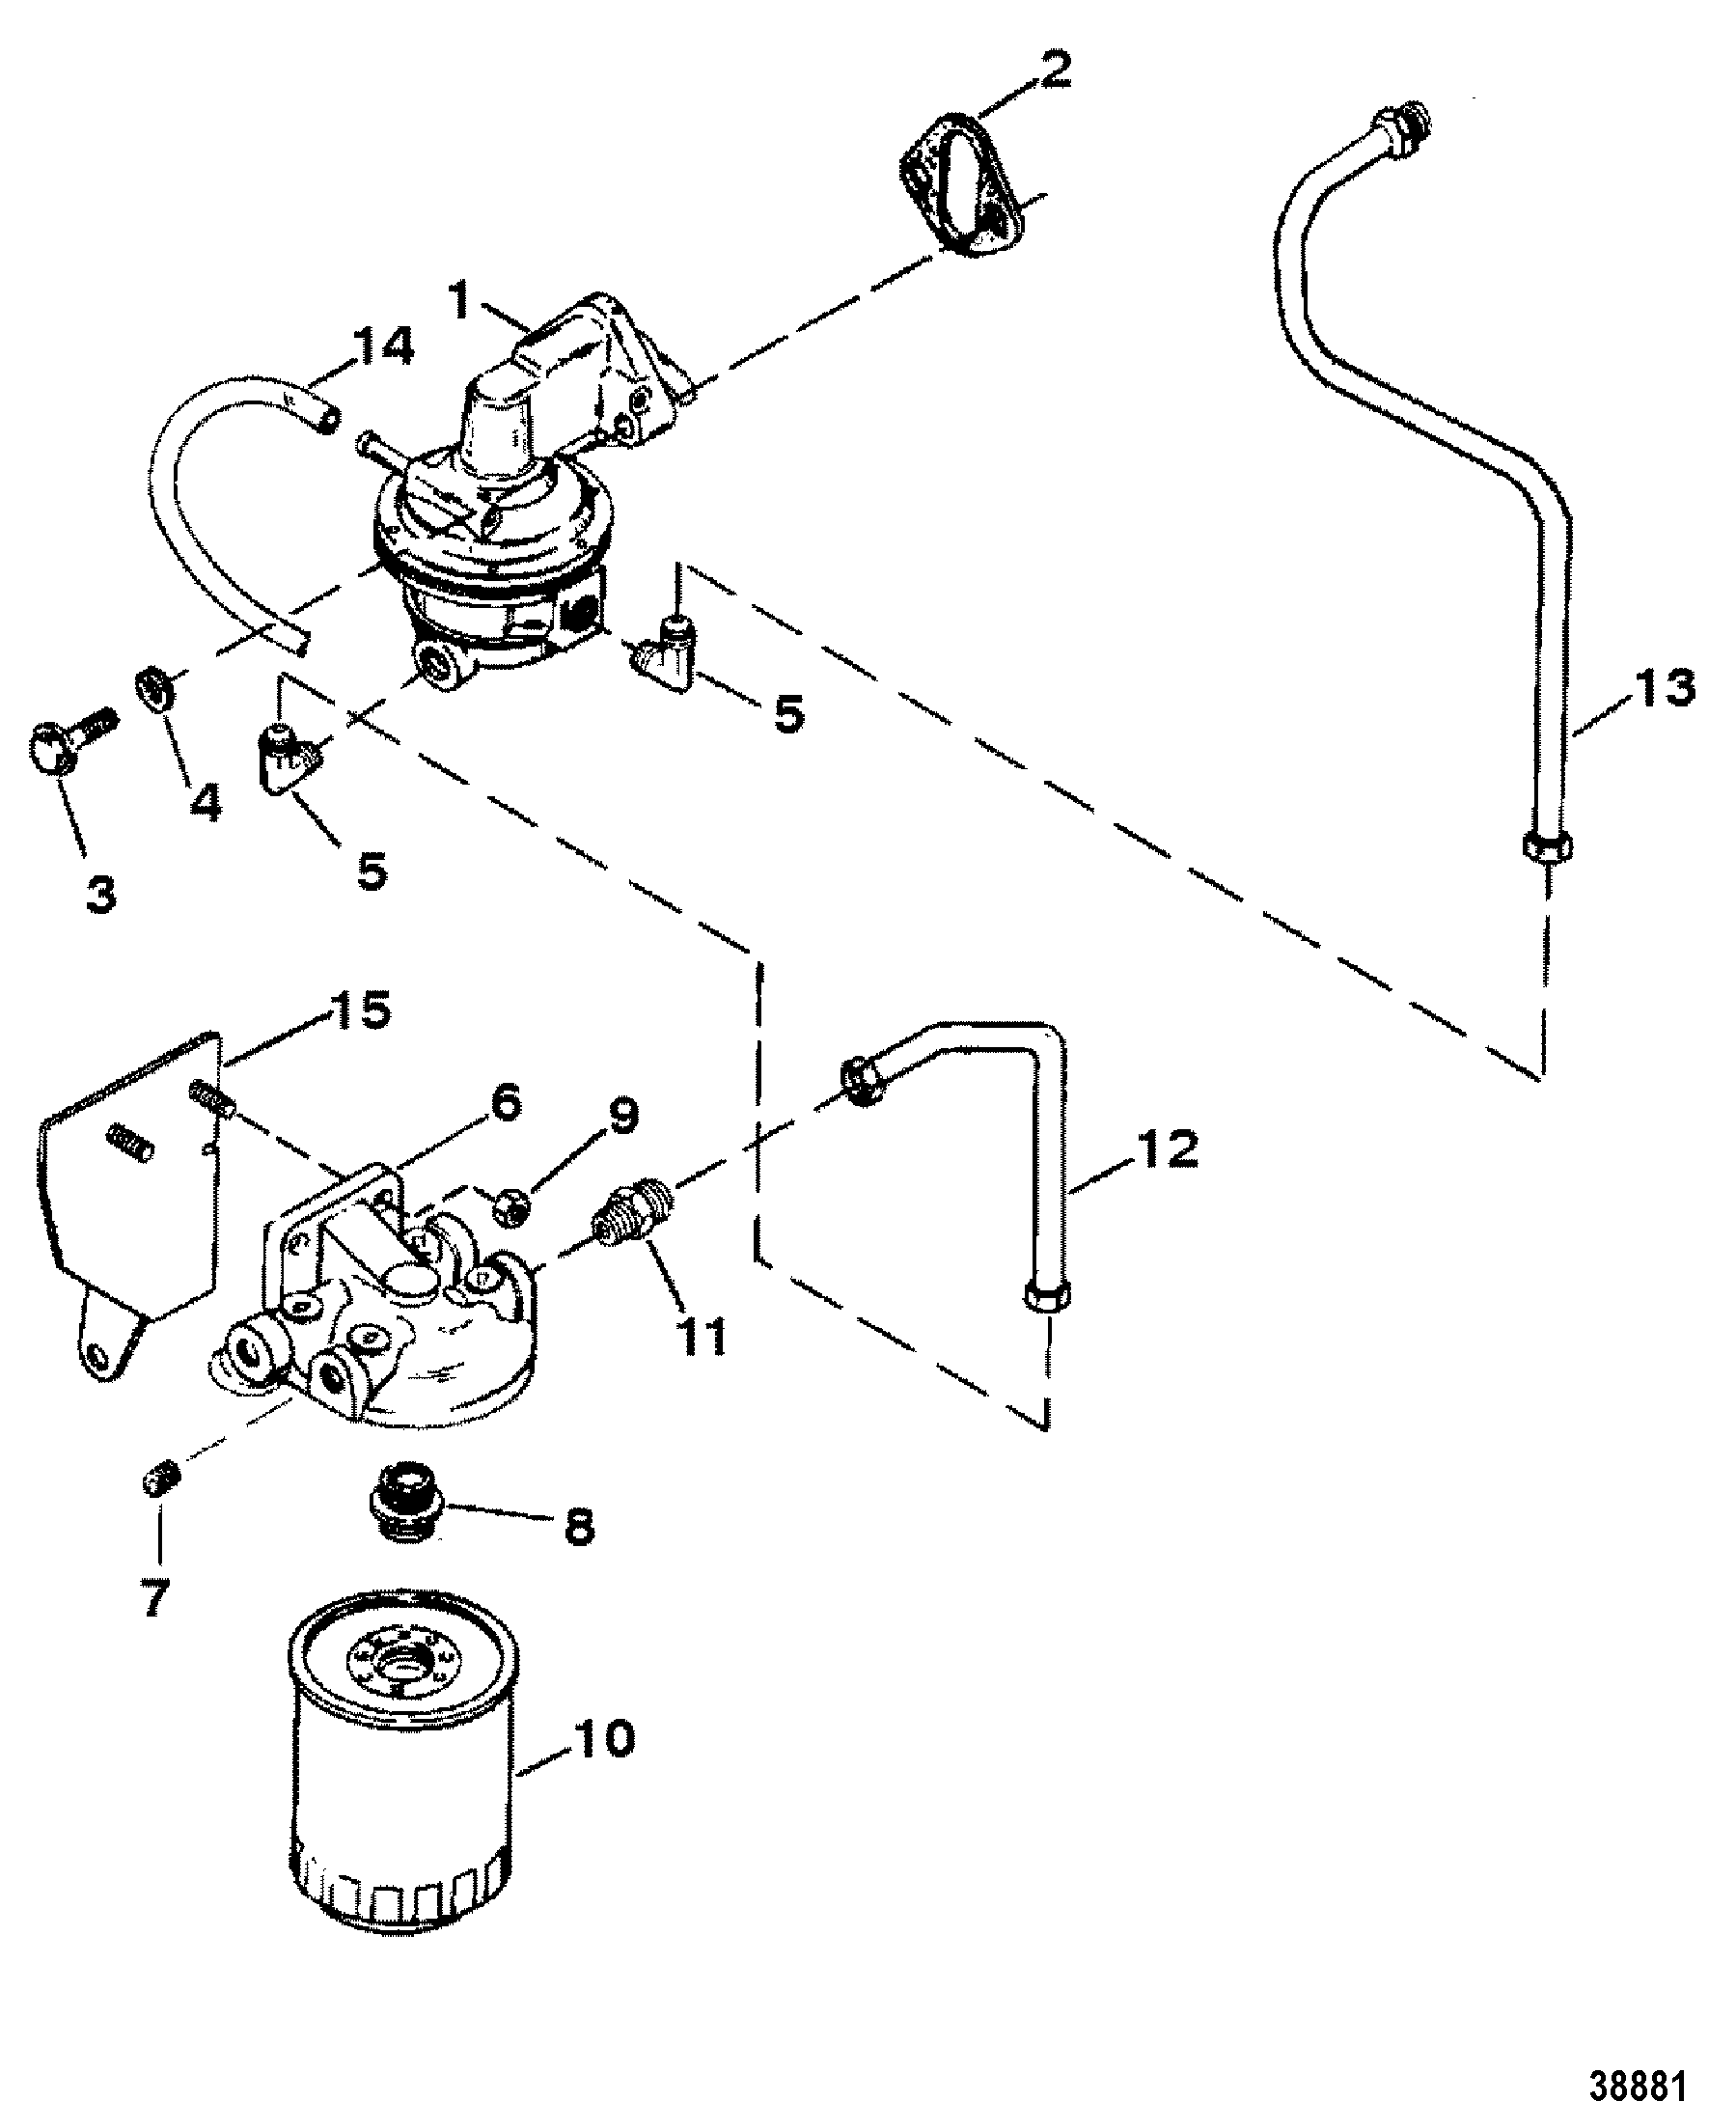 chevy s10 exhaust system diagram